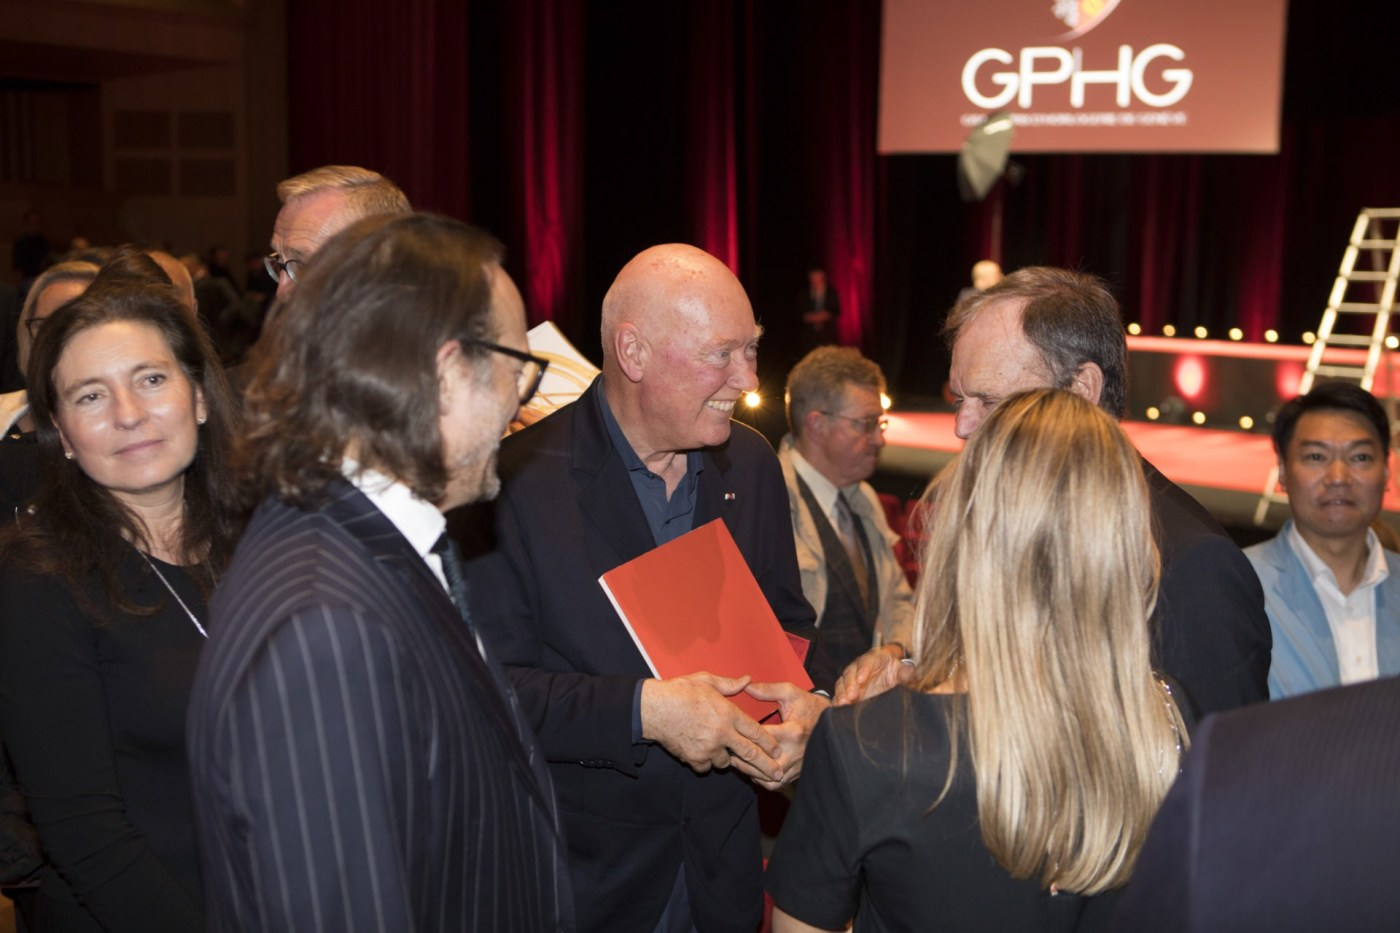 Industry legend, Jean-Claude Biver, won the 2018 GPHG special jury prize after 45 years in the watch business